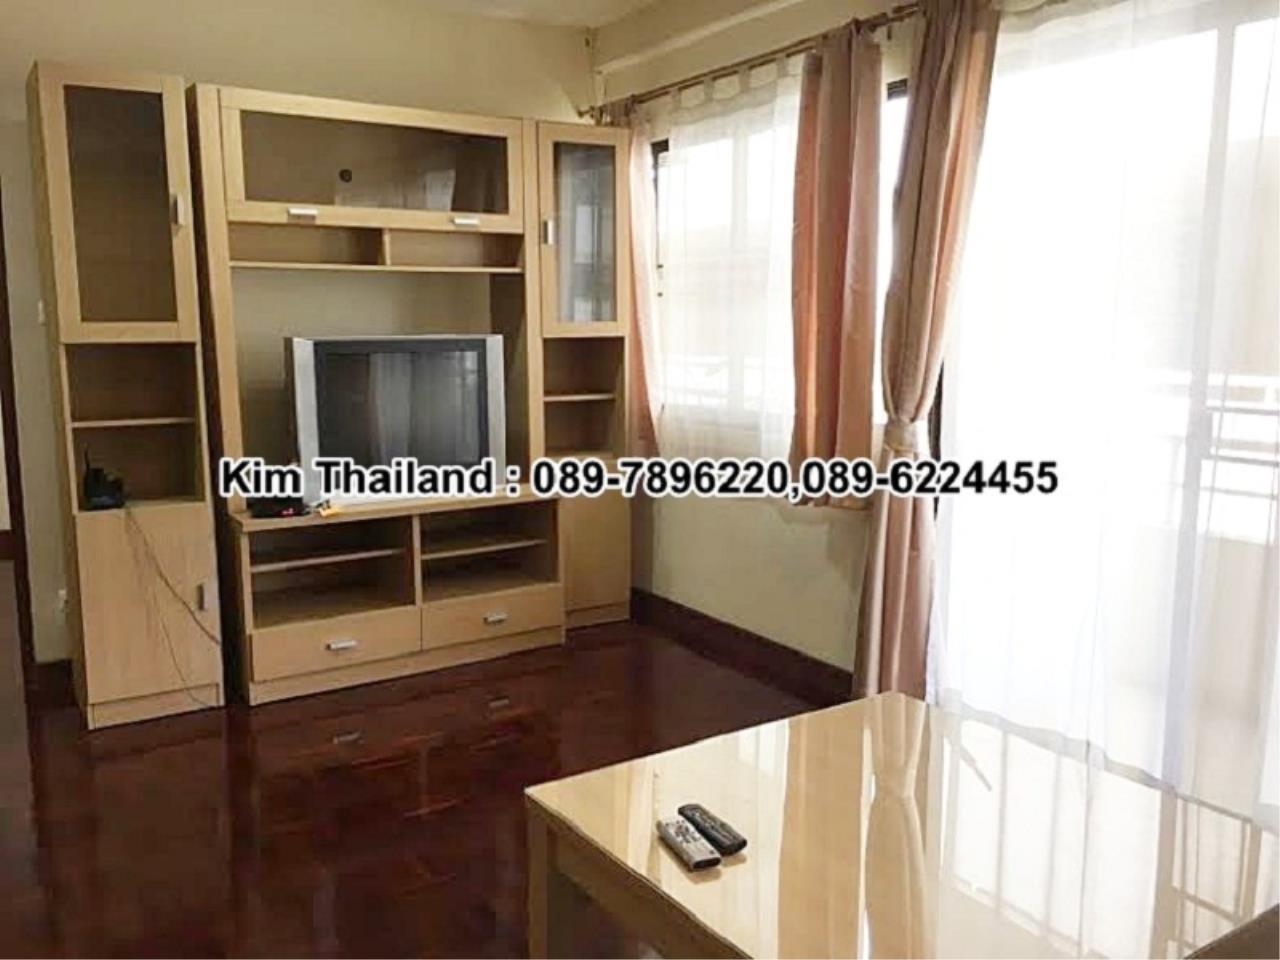 BKKcondorental Agency's For rent, Condo Saranjai Mansion. Area 63 sq.m. 1 bedroom. Rent 20,000baht/month 10